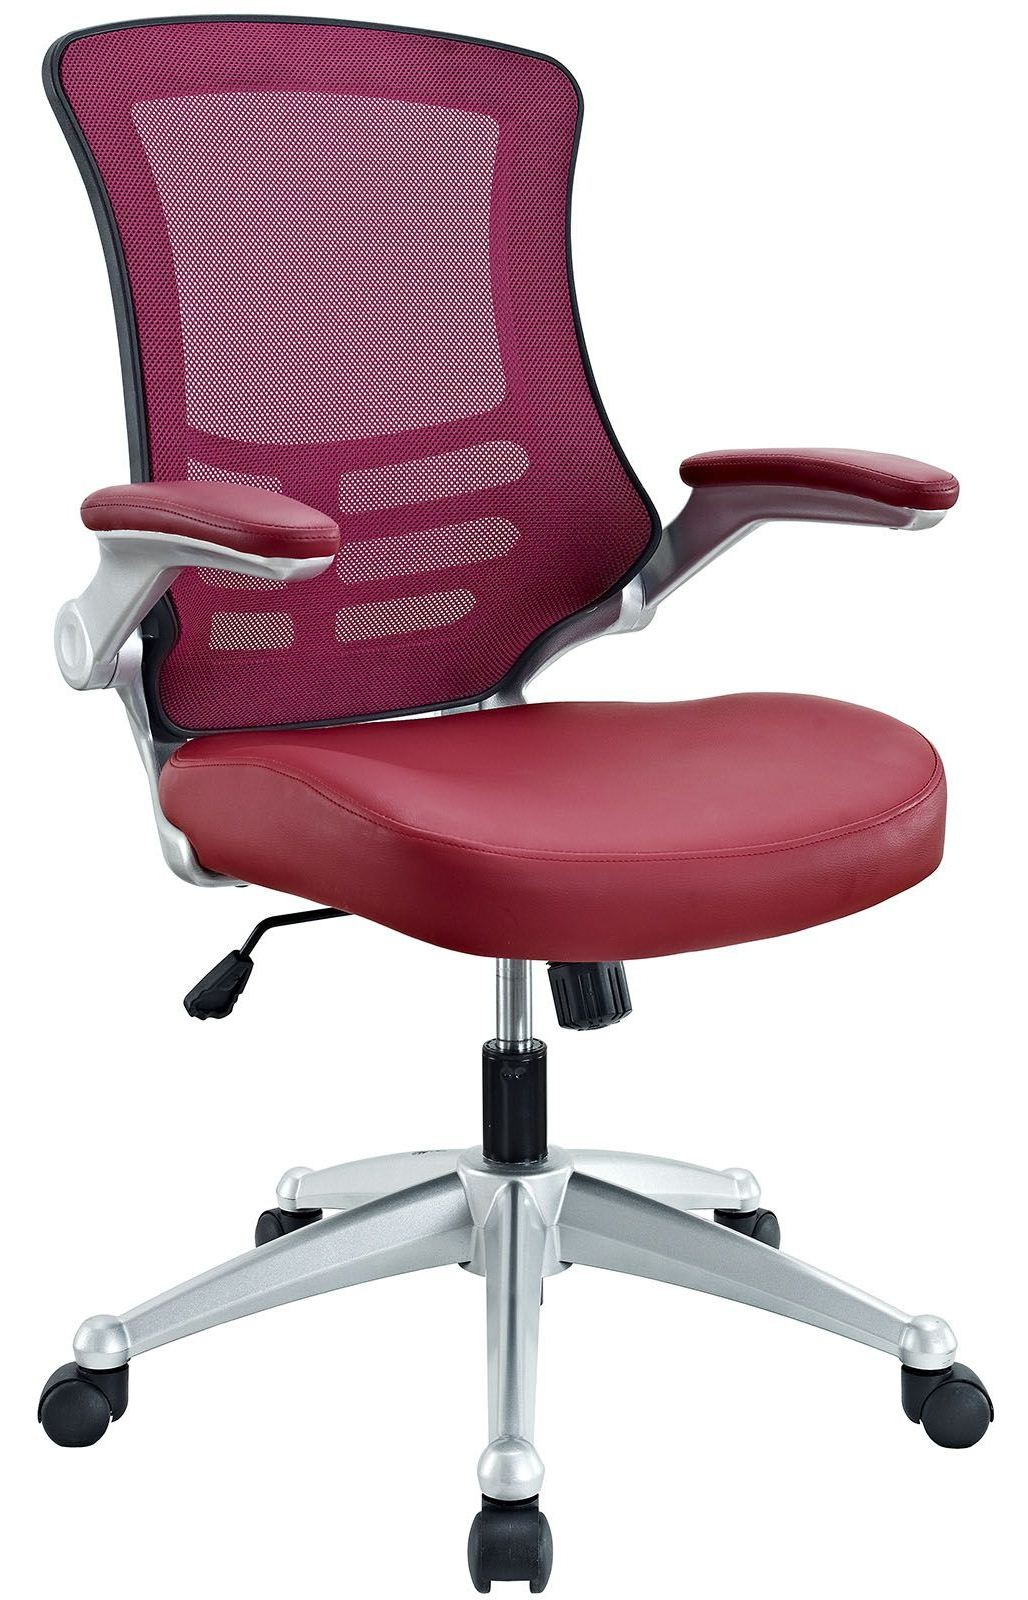 Attainment Burgundy Office Chair From Renegade Eei 210